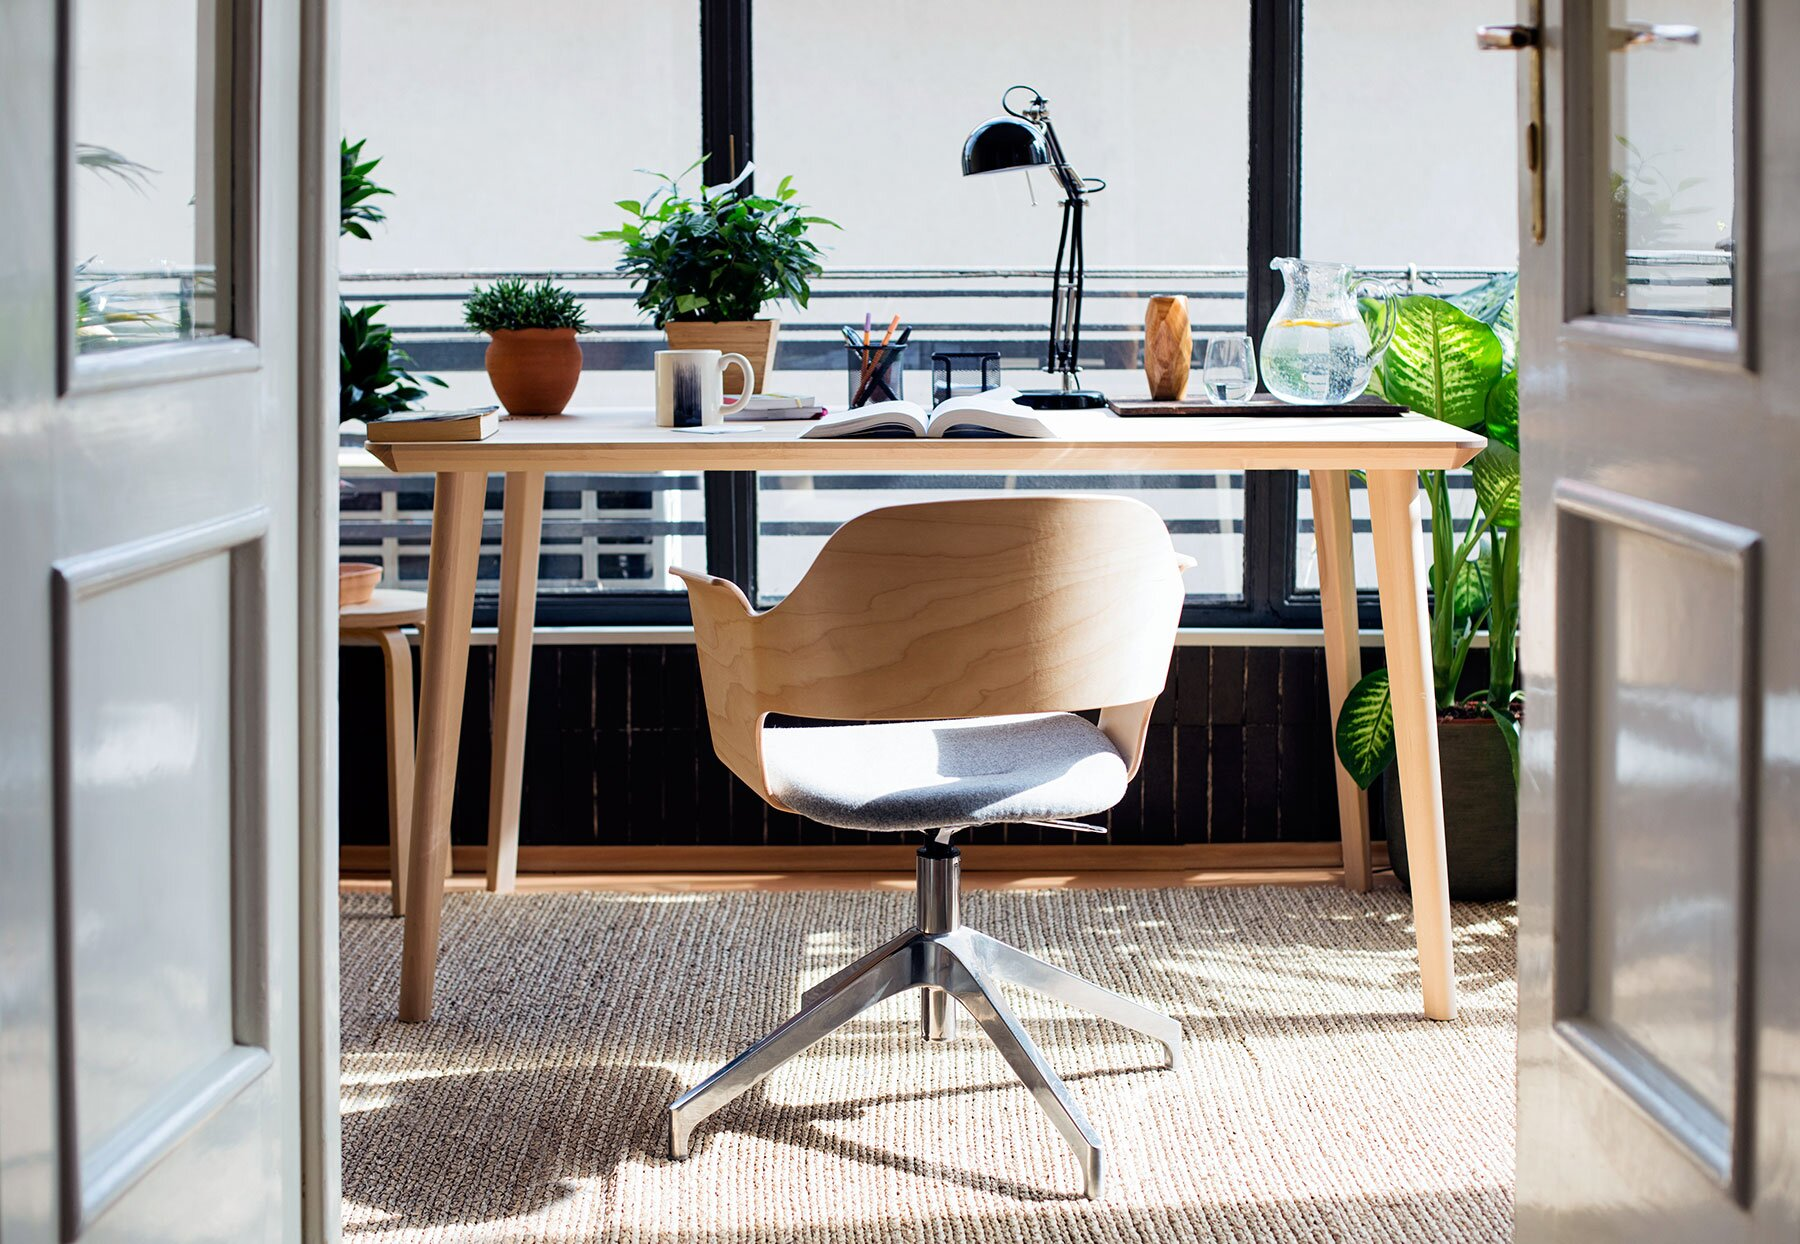 10 Home Office Ideas That Will Make You Want To Work All Day